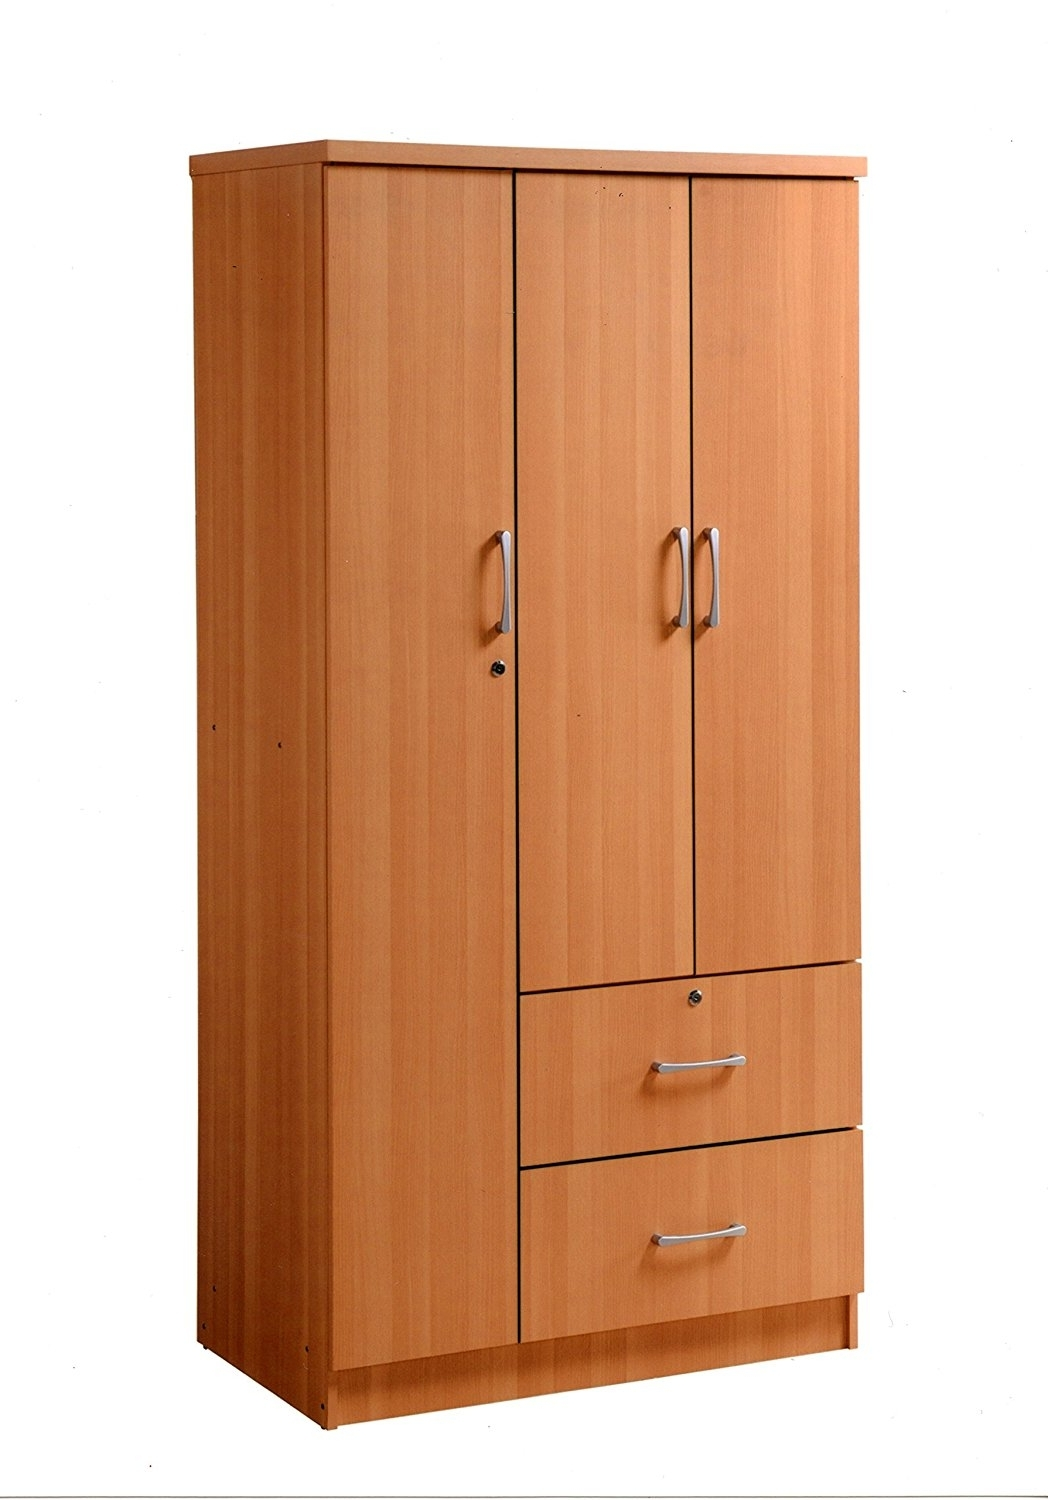 Three Door Wardrobes With Mirror Intended For Most Popular Amazon: Hodedah Import 3 Door Wardrobe, Black: Kitchen & Dining (View 9 of 15)